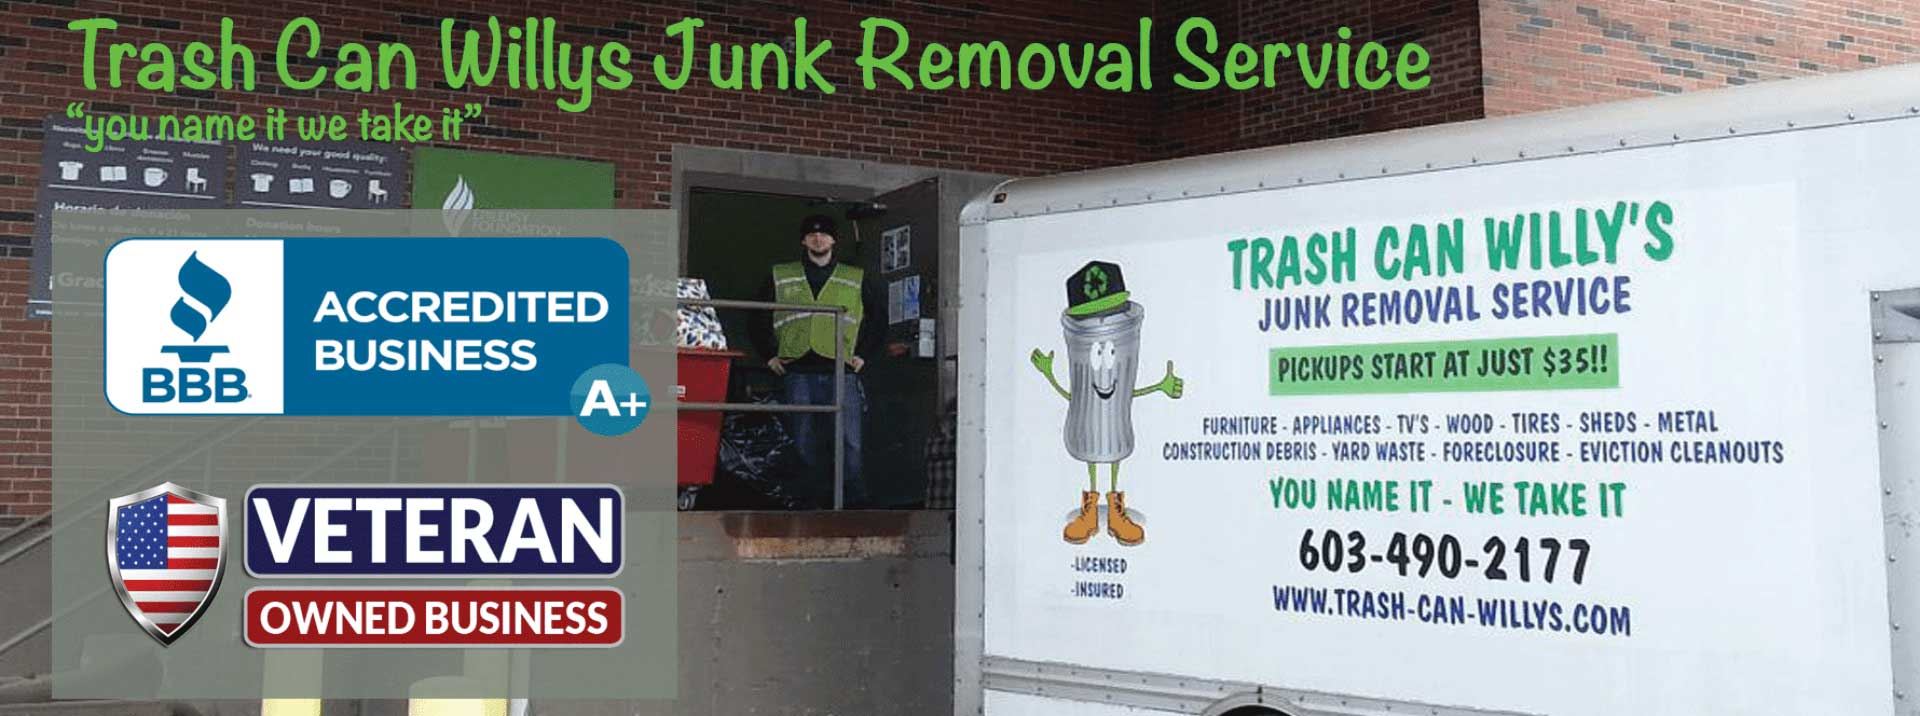 junk removal junk hauling new hampshire manchester exeter salem laconia